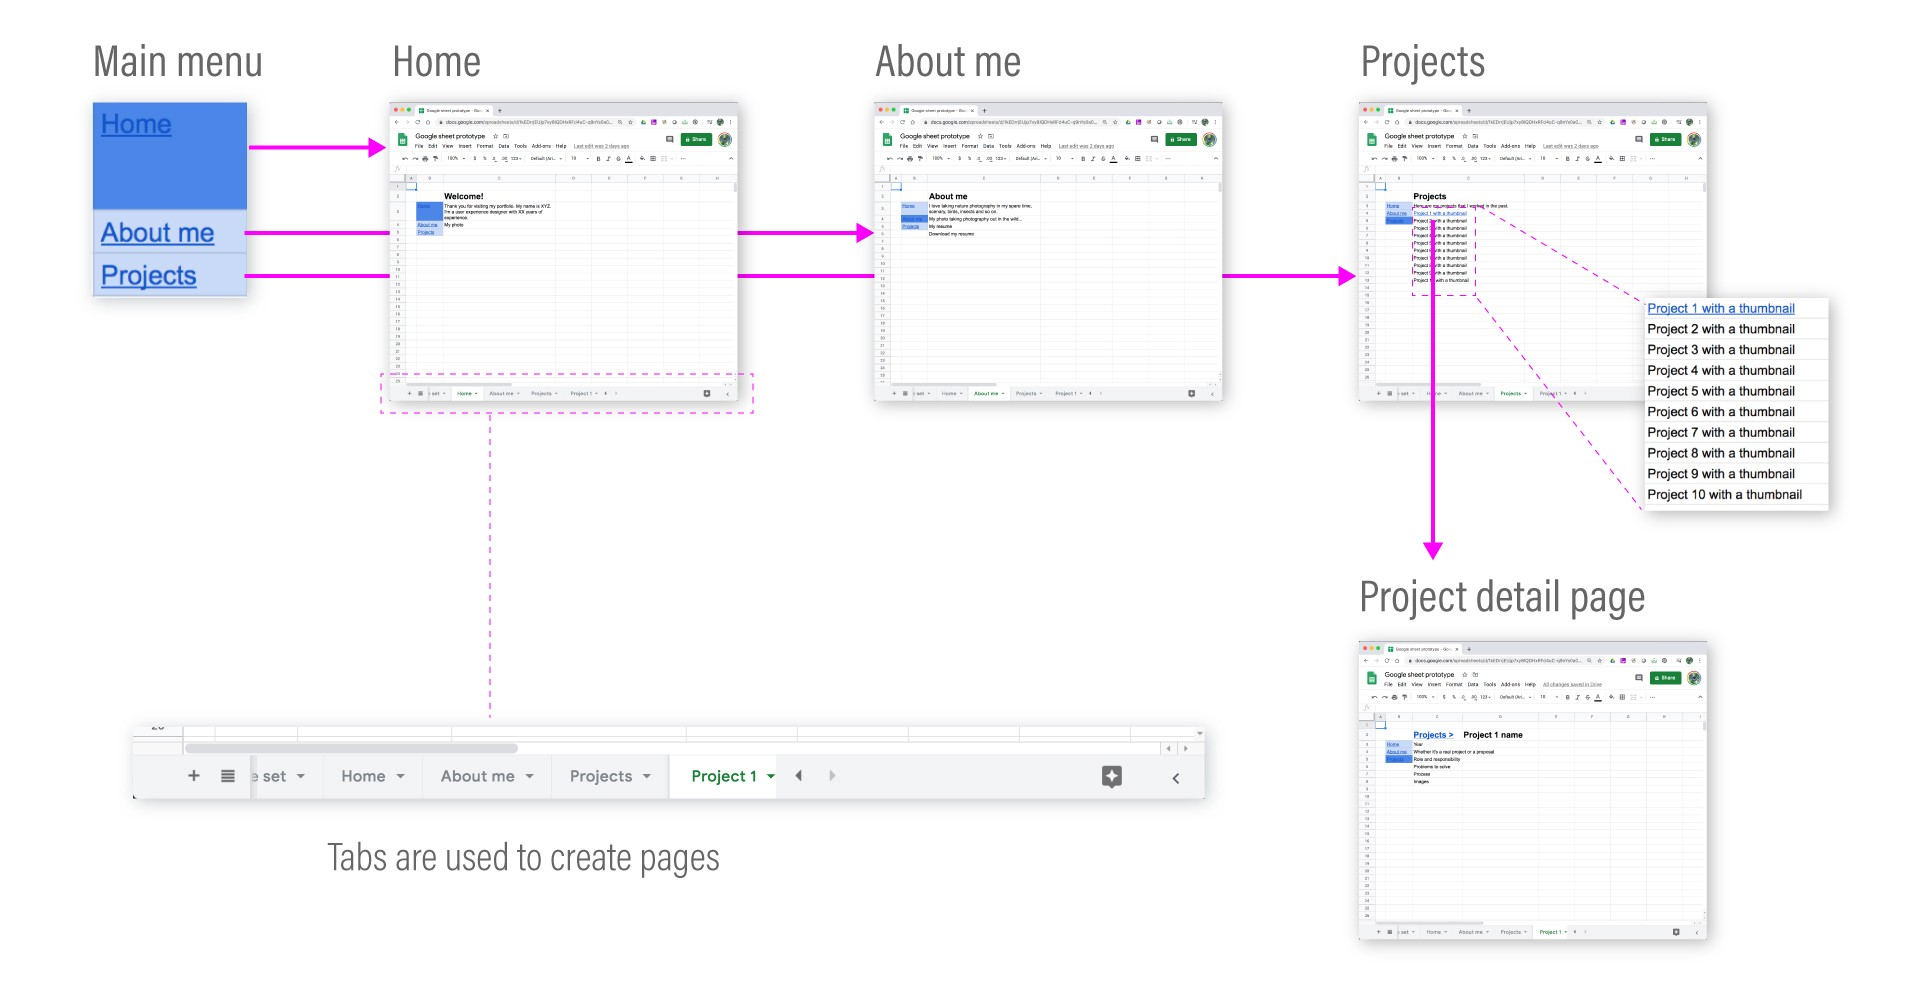 A diagram showing an overall structure of a portfolio site low-fidelity prototype with pages, main menu, and tabs.